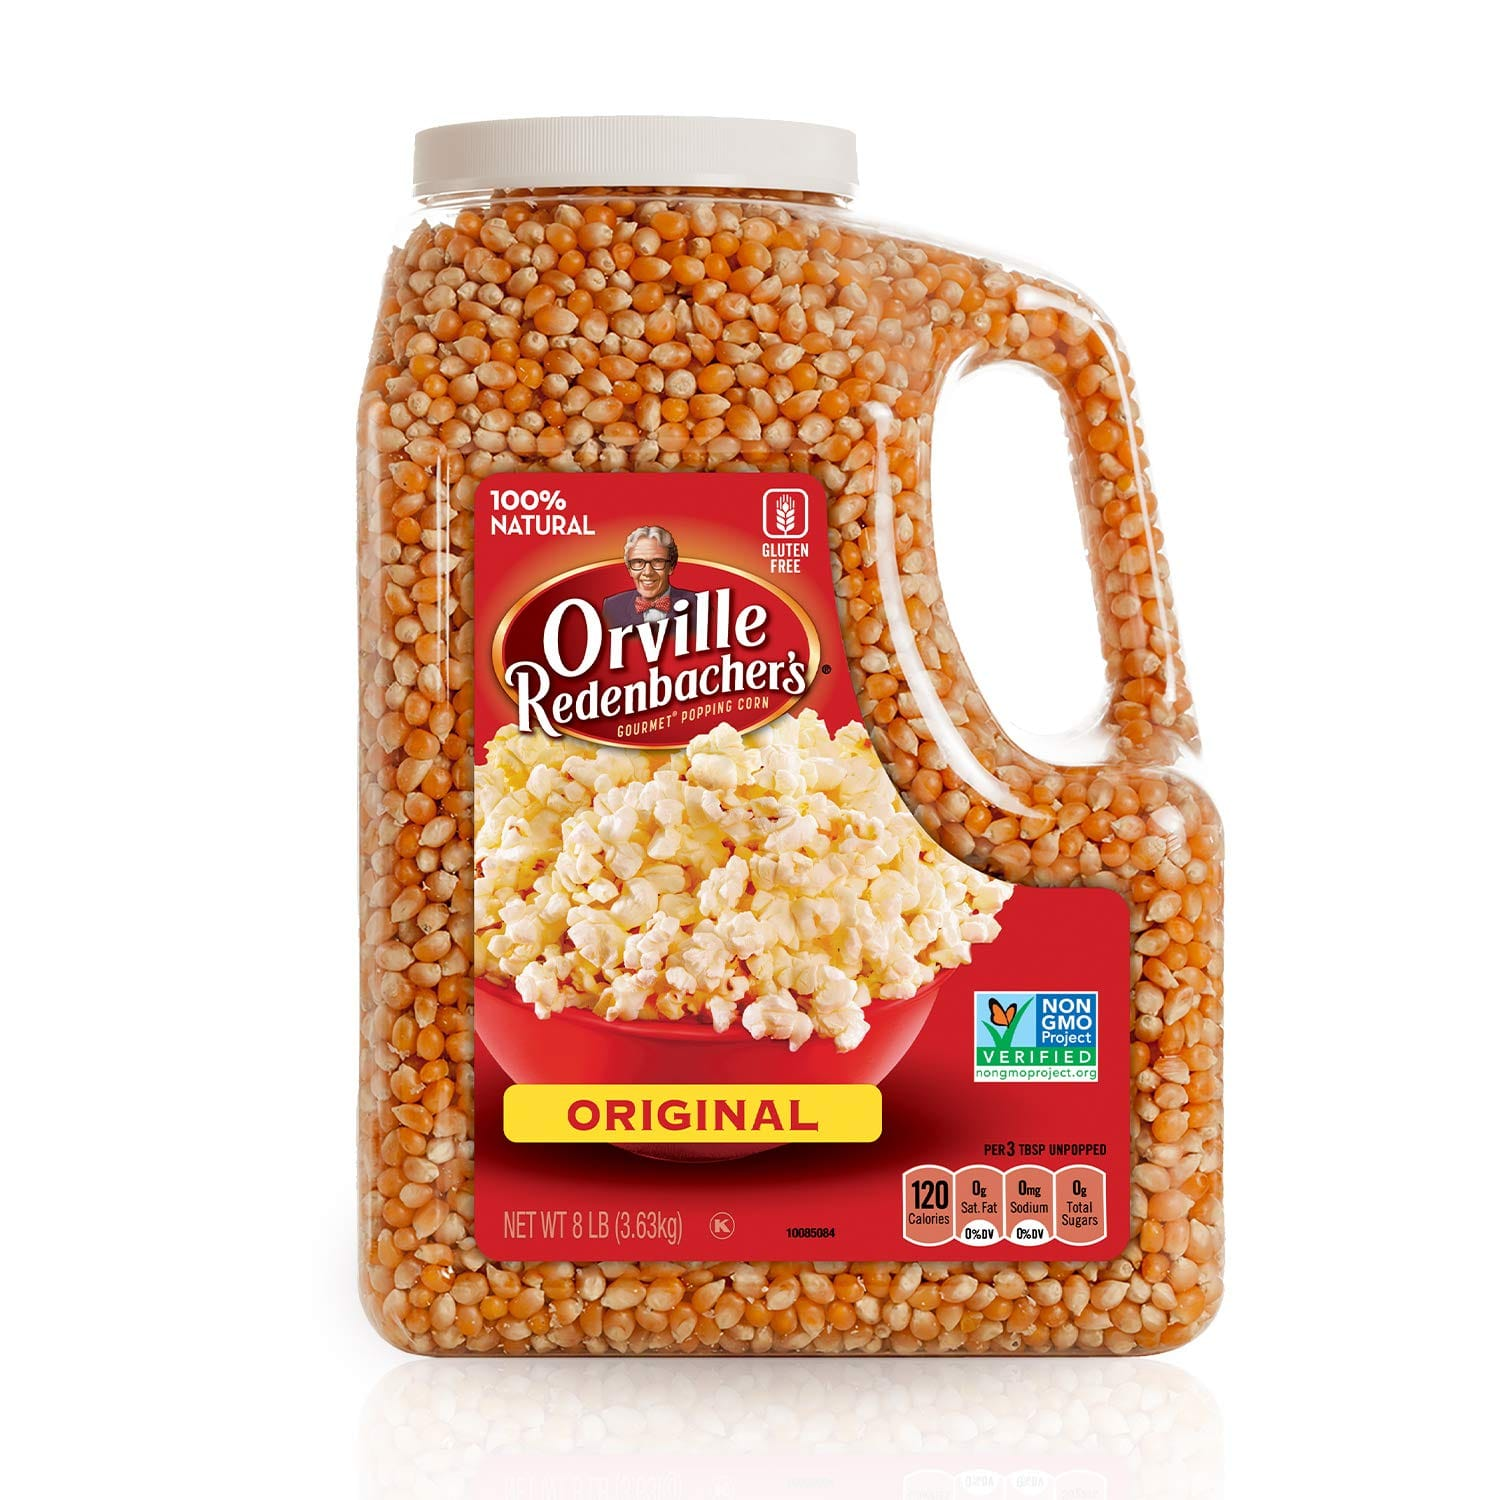 Orville Redenbacher's Gourmet Popcorn Kernels, Original Yellow, 8 lb with Free Shipping Amazon S&S $11.49 as low as $10.92